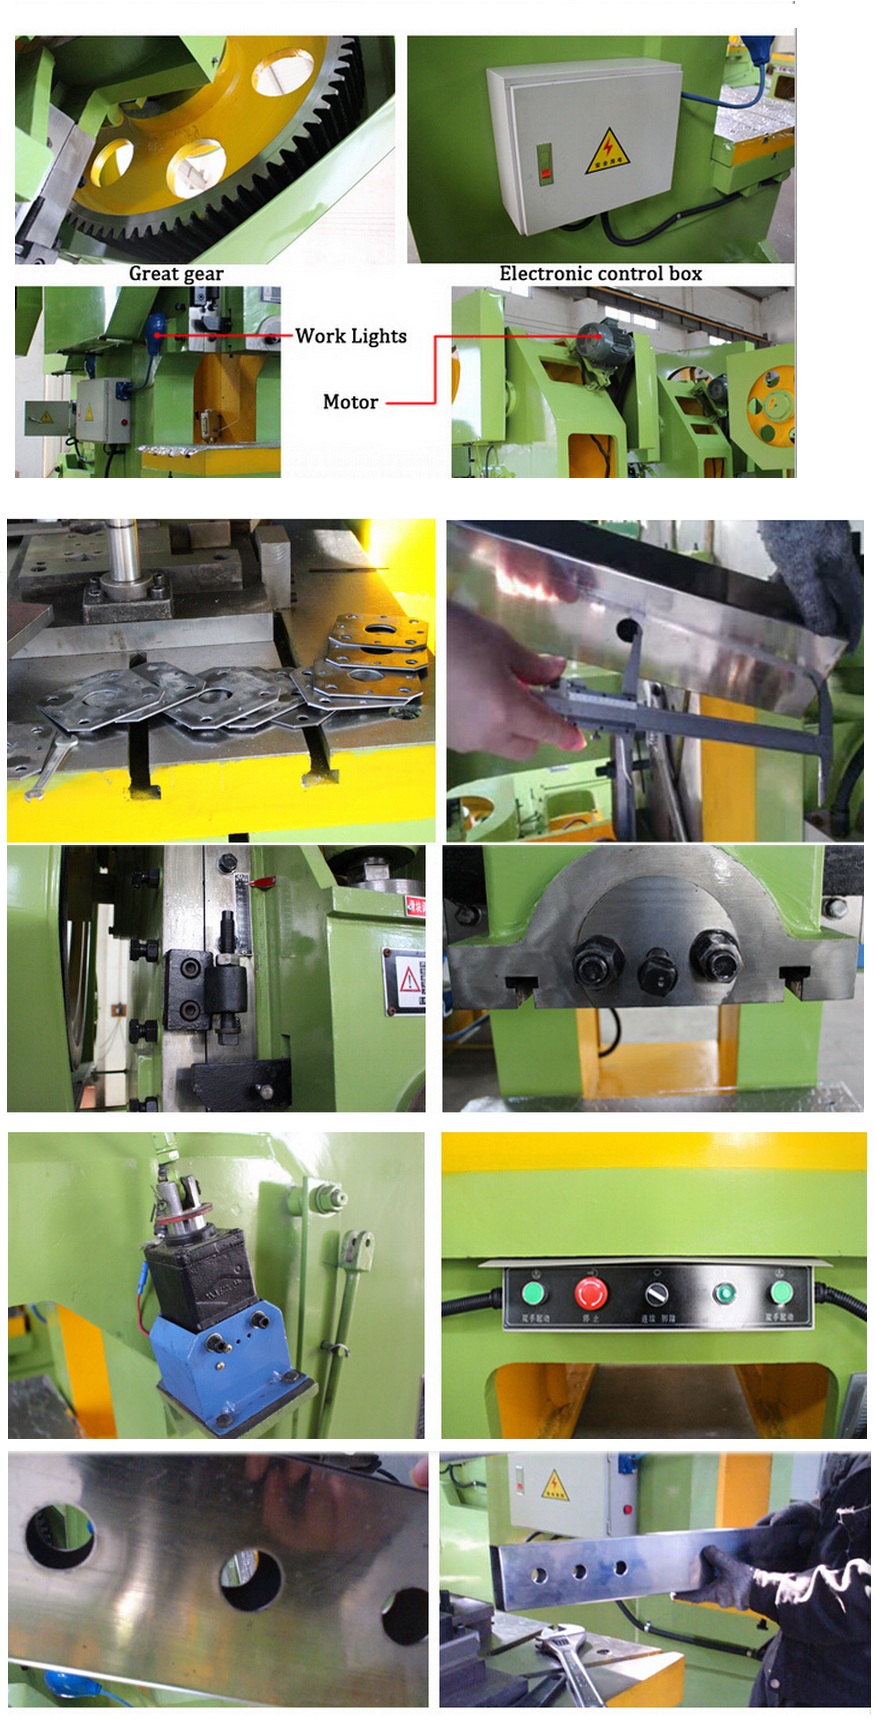 J21 mechanical punch press for sheet metal hole